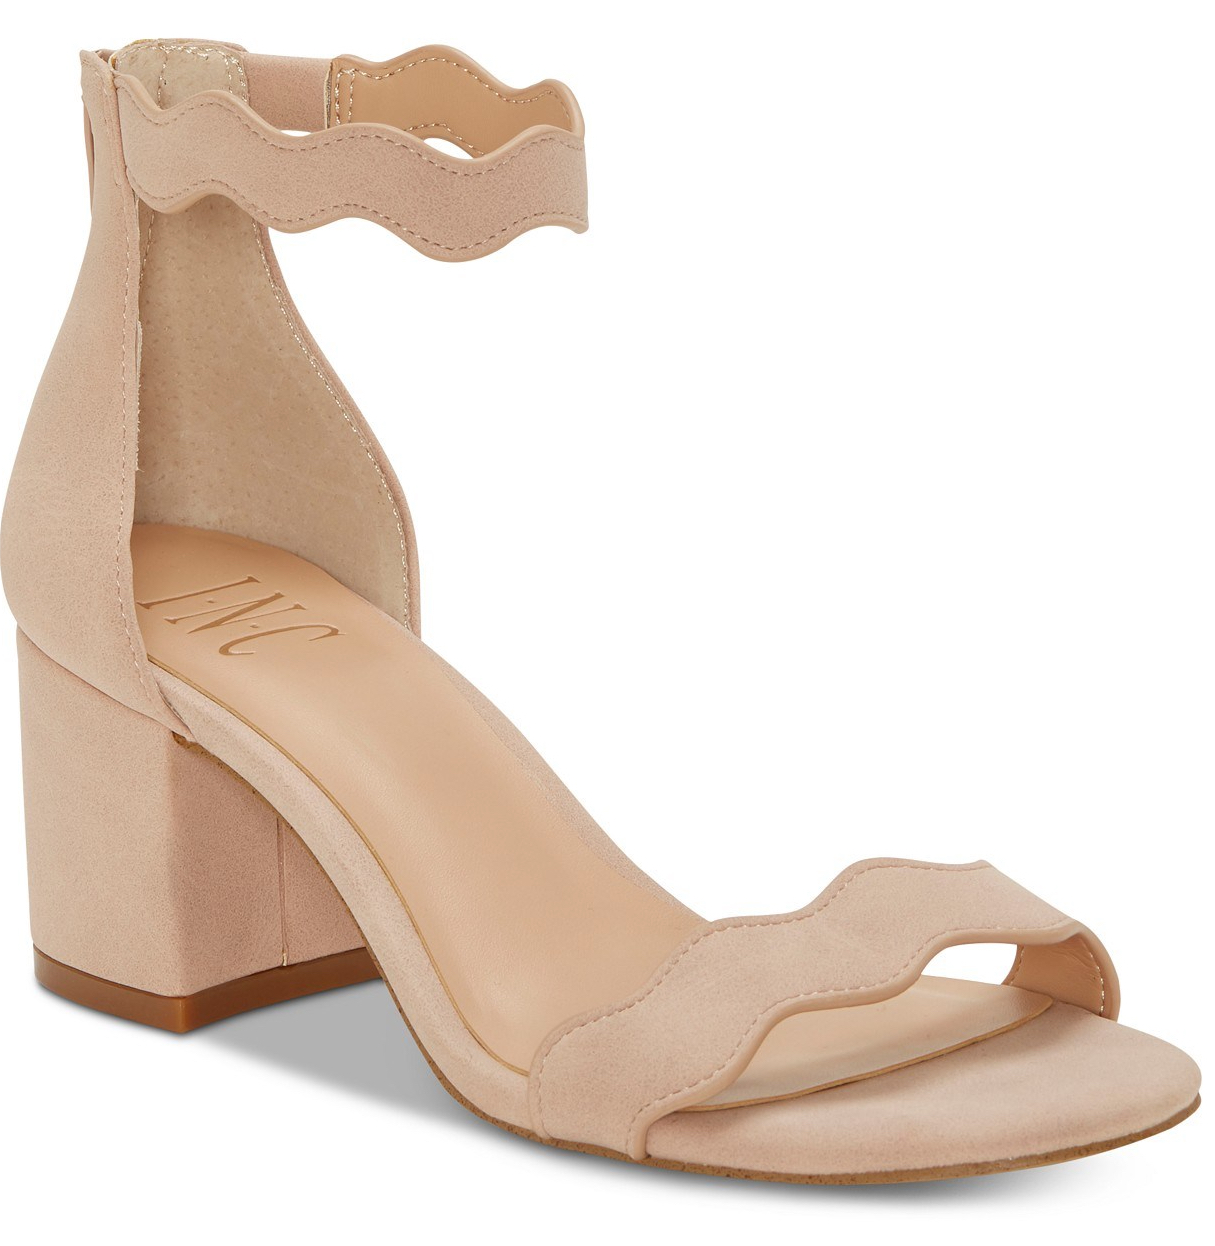 The Perfect Heel for Teens and Tweens